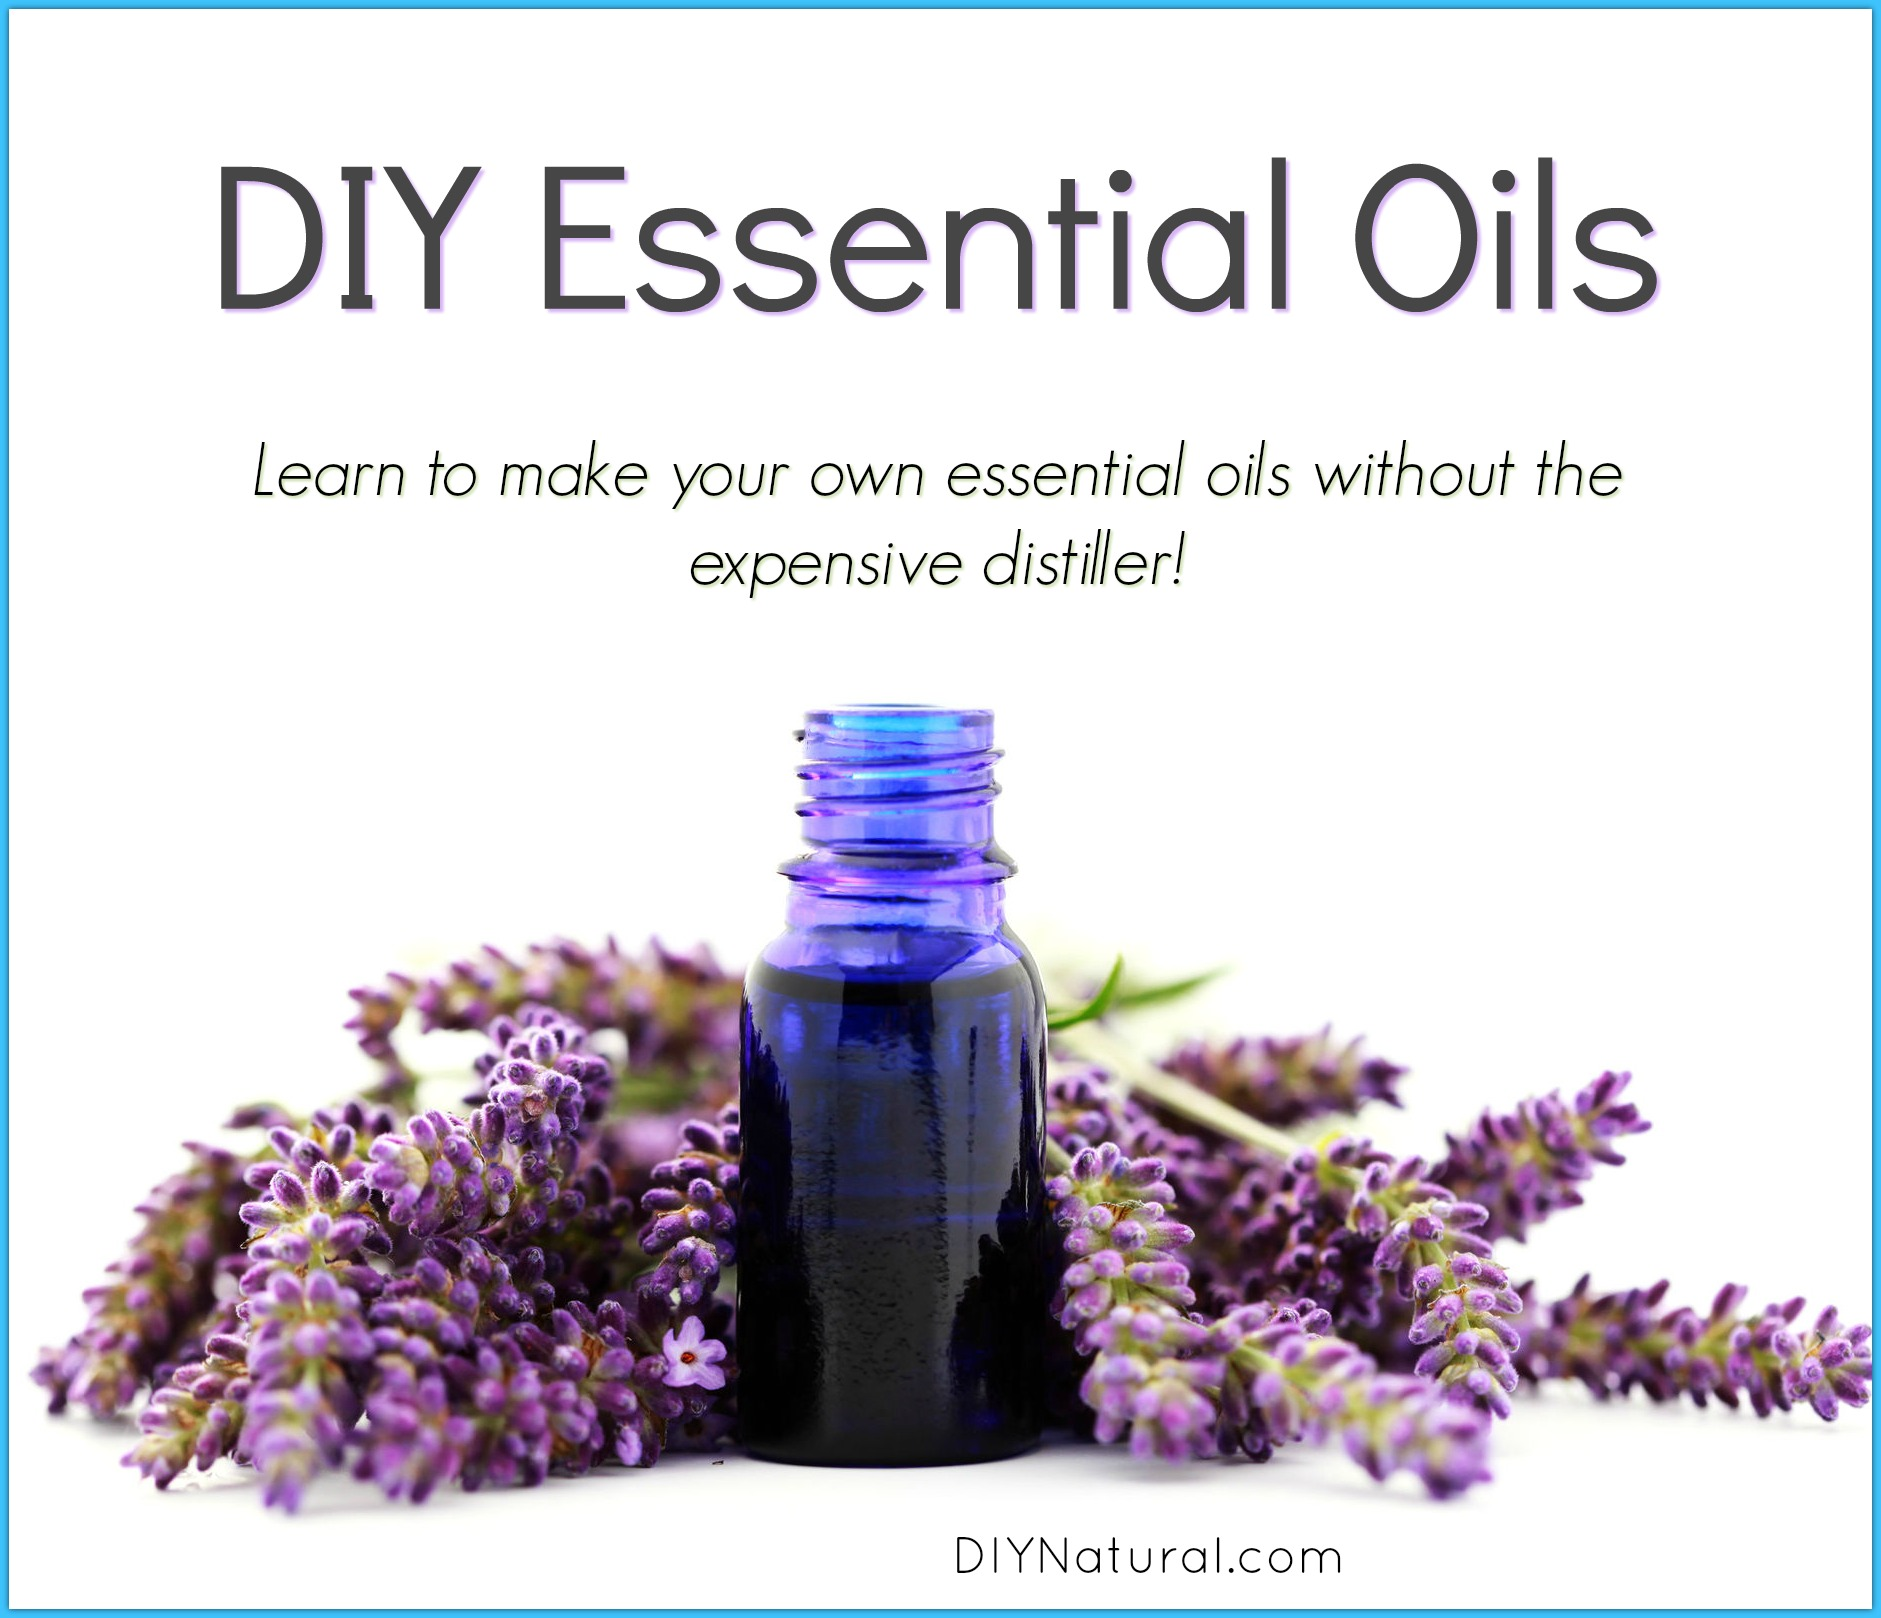 Diy Soap Essential Oils Diy Essential Oils Learn How To Make Your Own Essential Oils